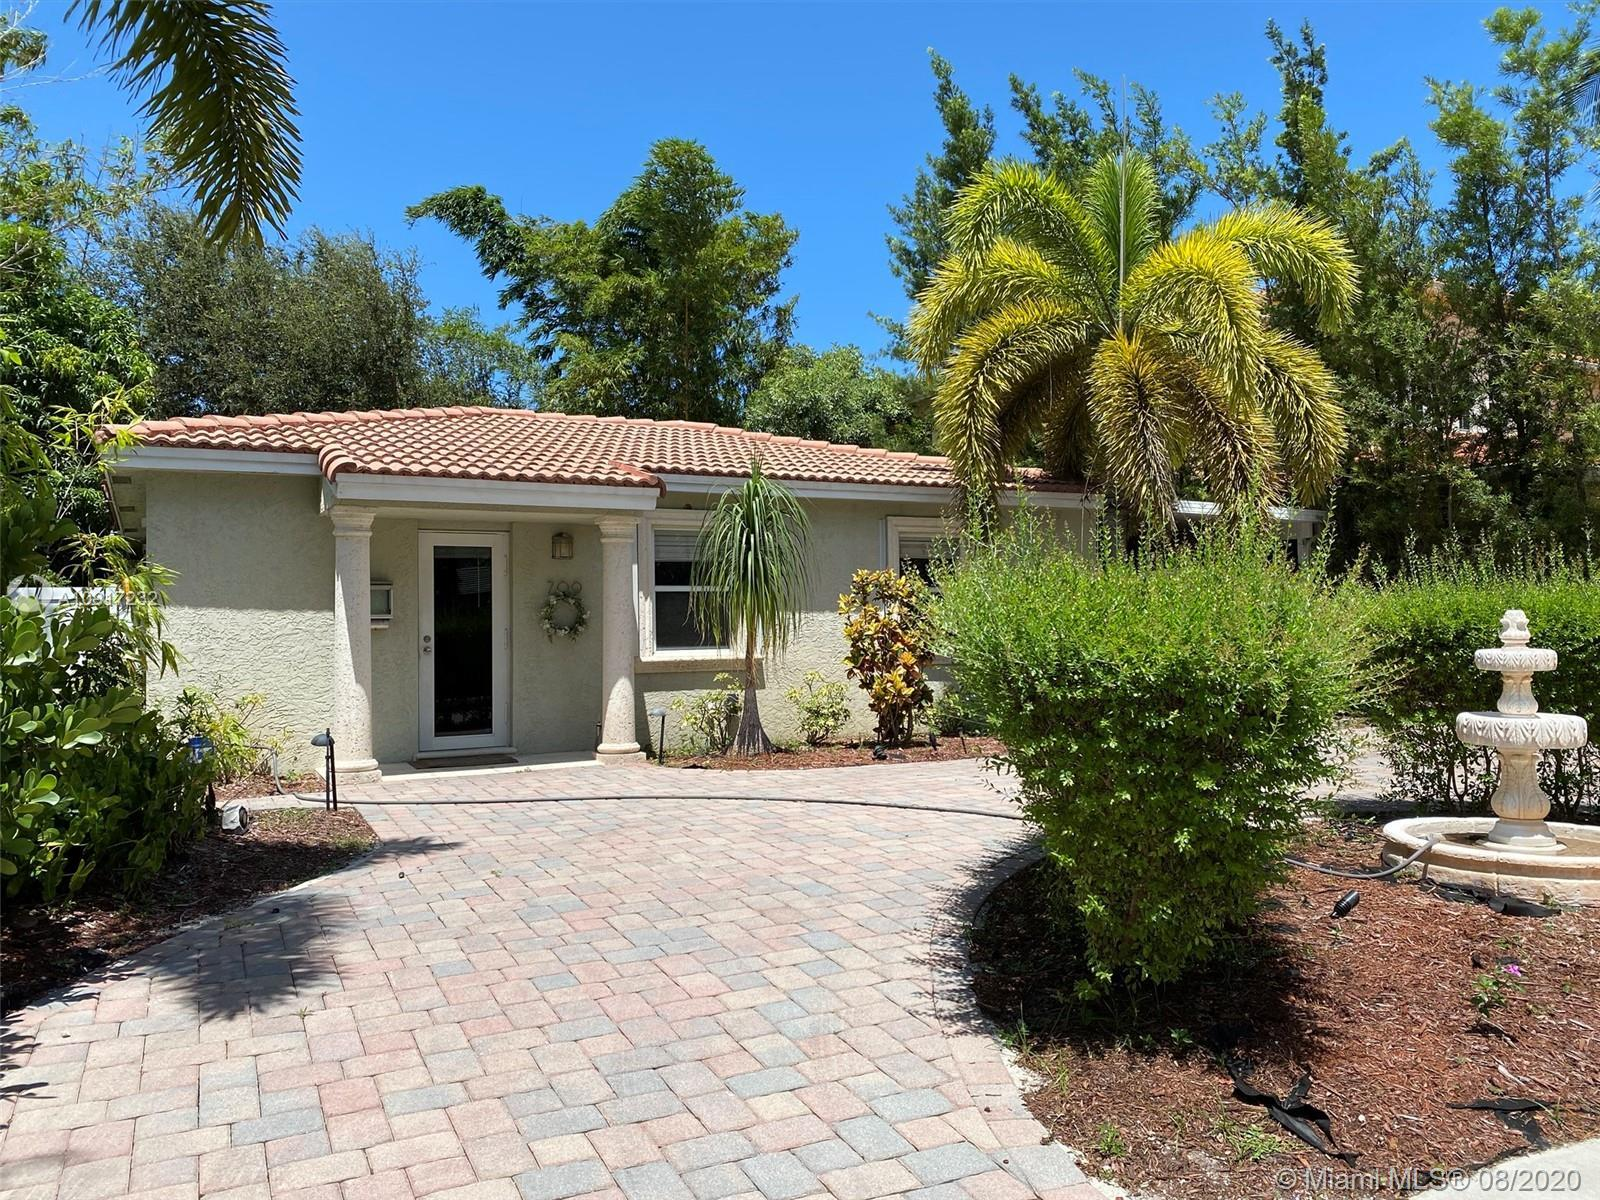 Welcome to this well maintained, renovated 3 bed/2 bath with no HOA in the heart of Fort Lauderdale.